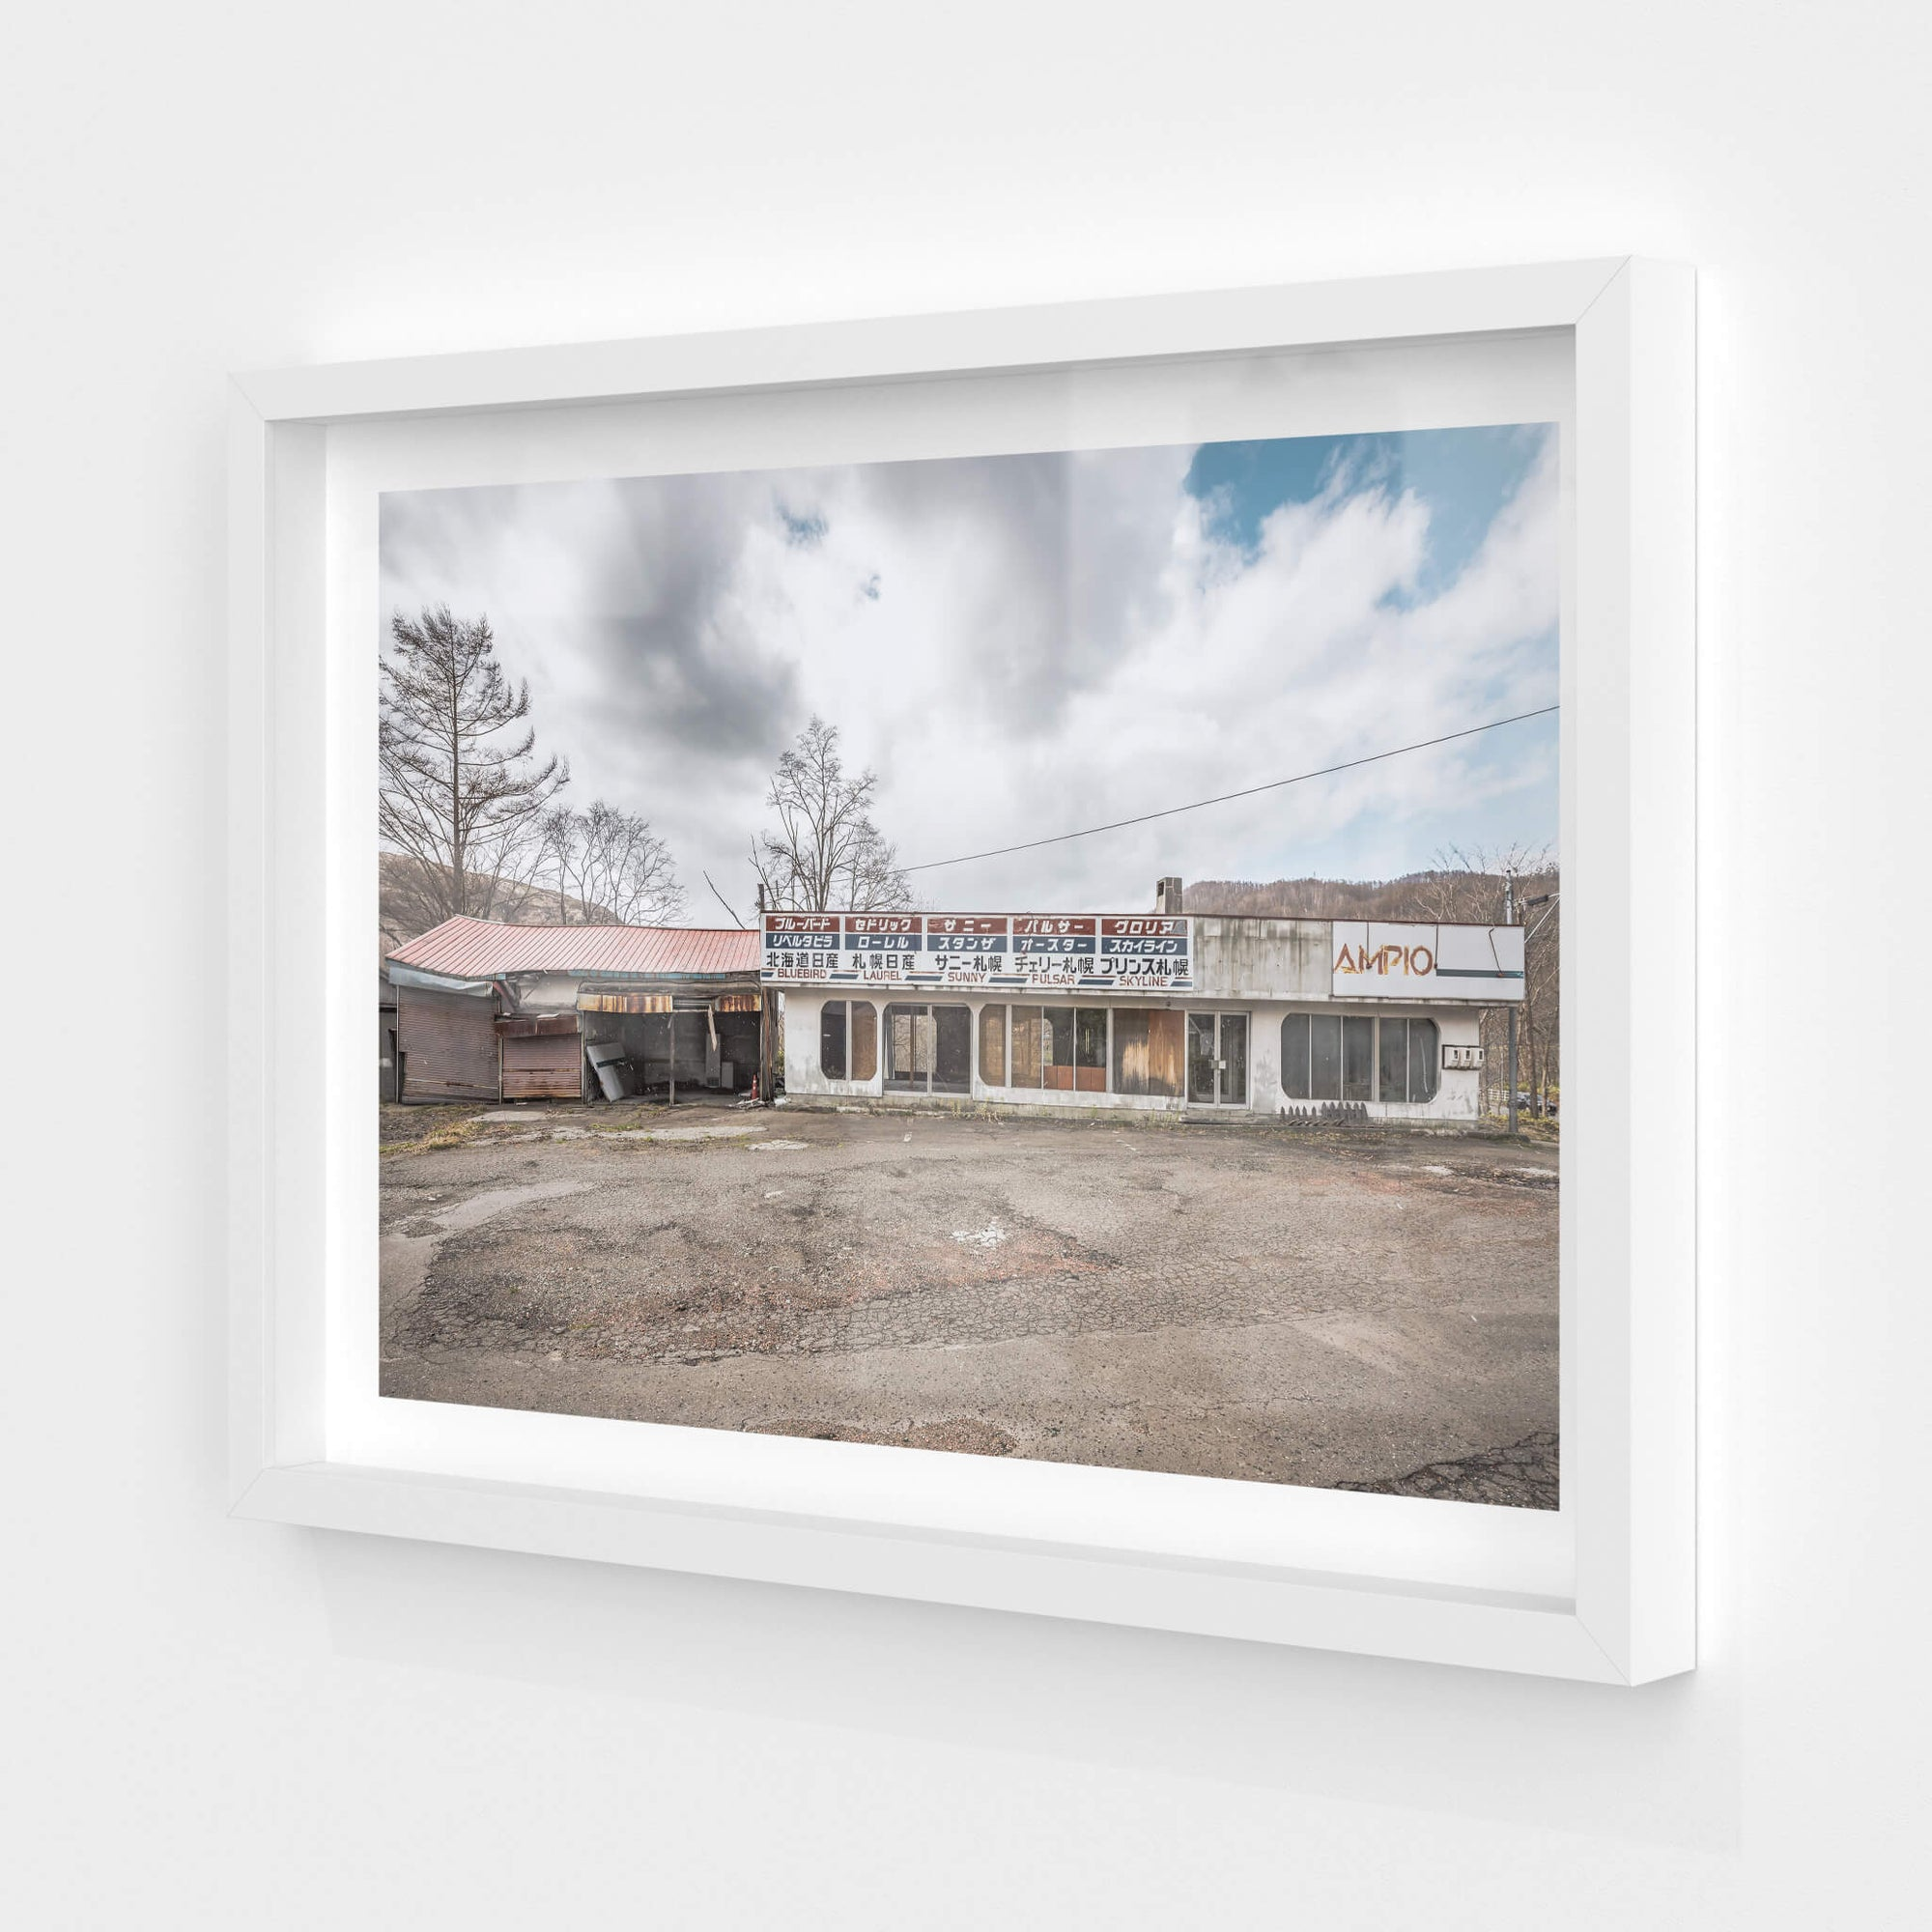 Nissan Car Dealership | Streetscapes of Yubari Fine Art Print - Lost Collective Shop